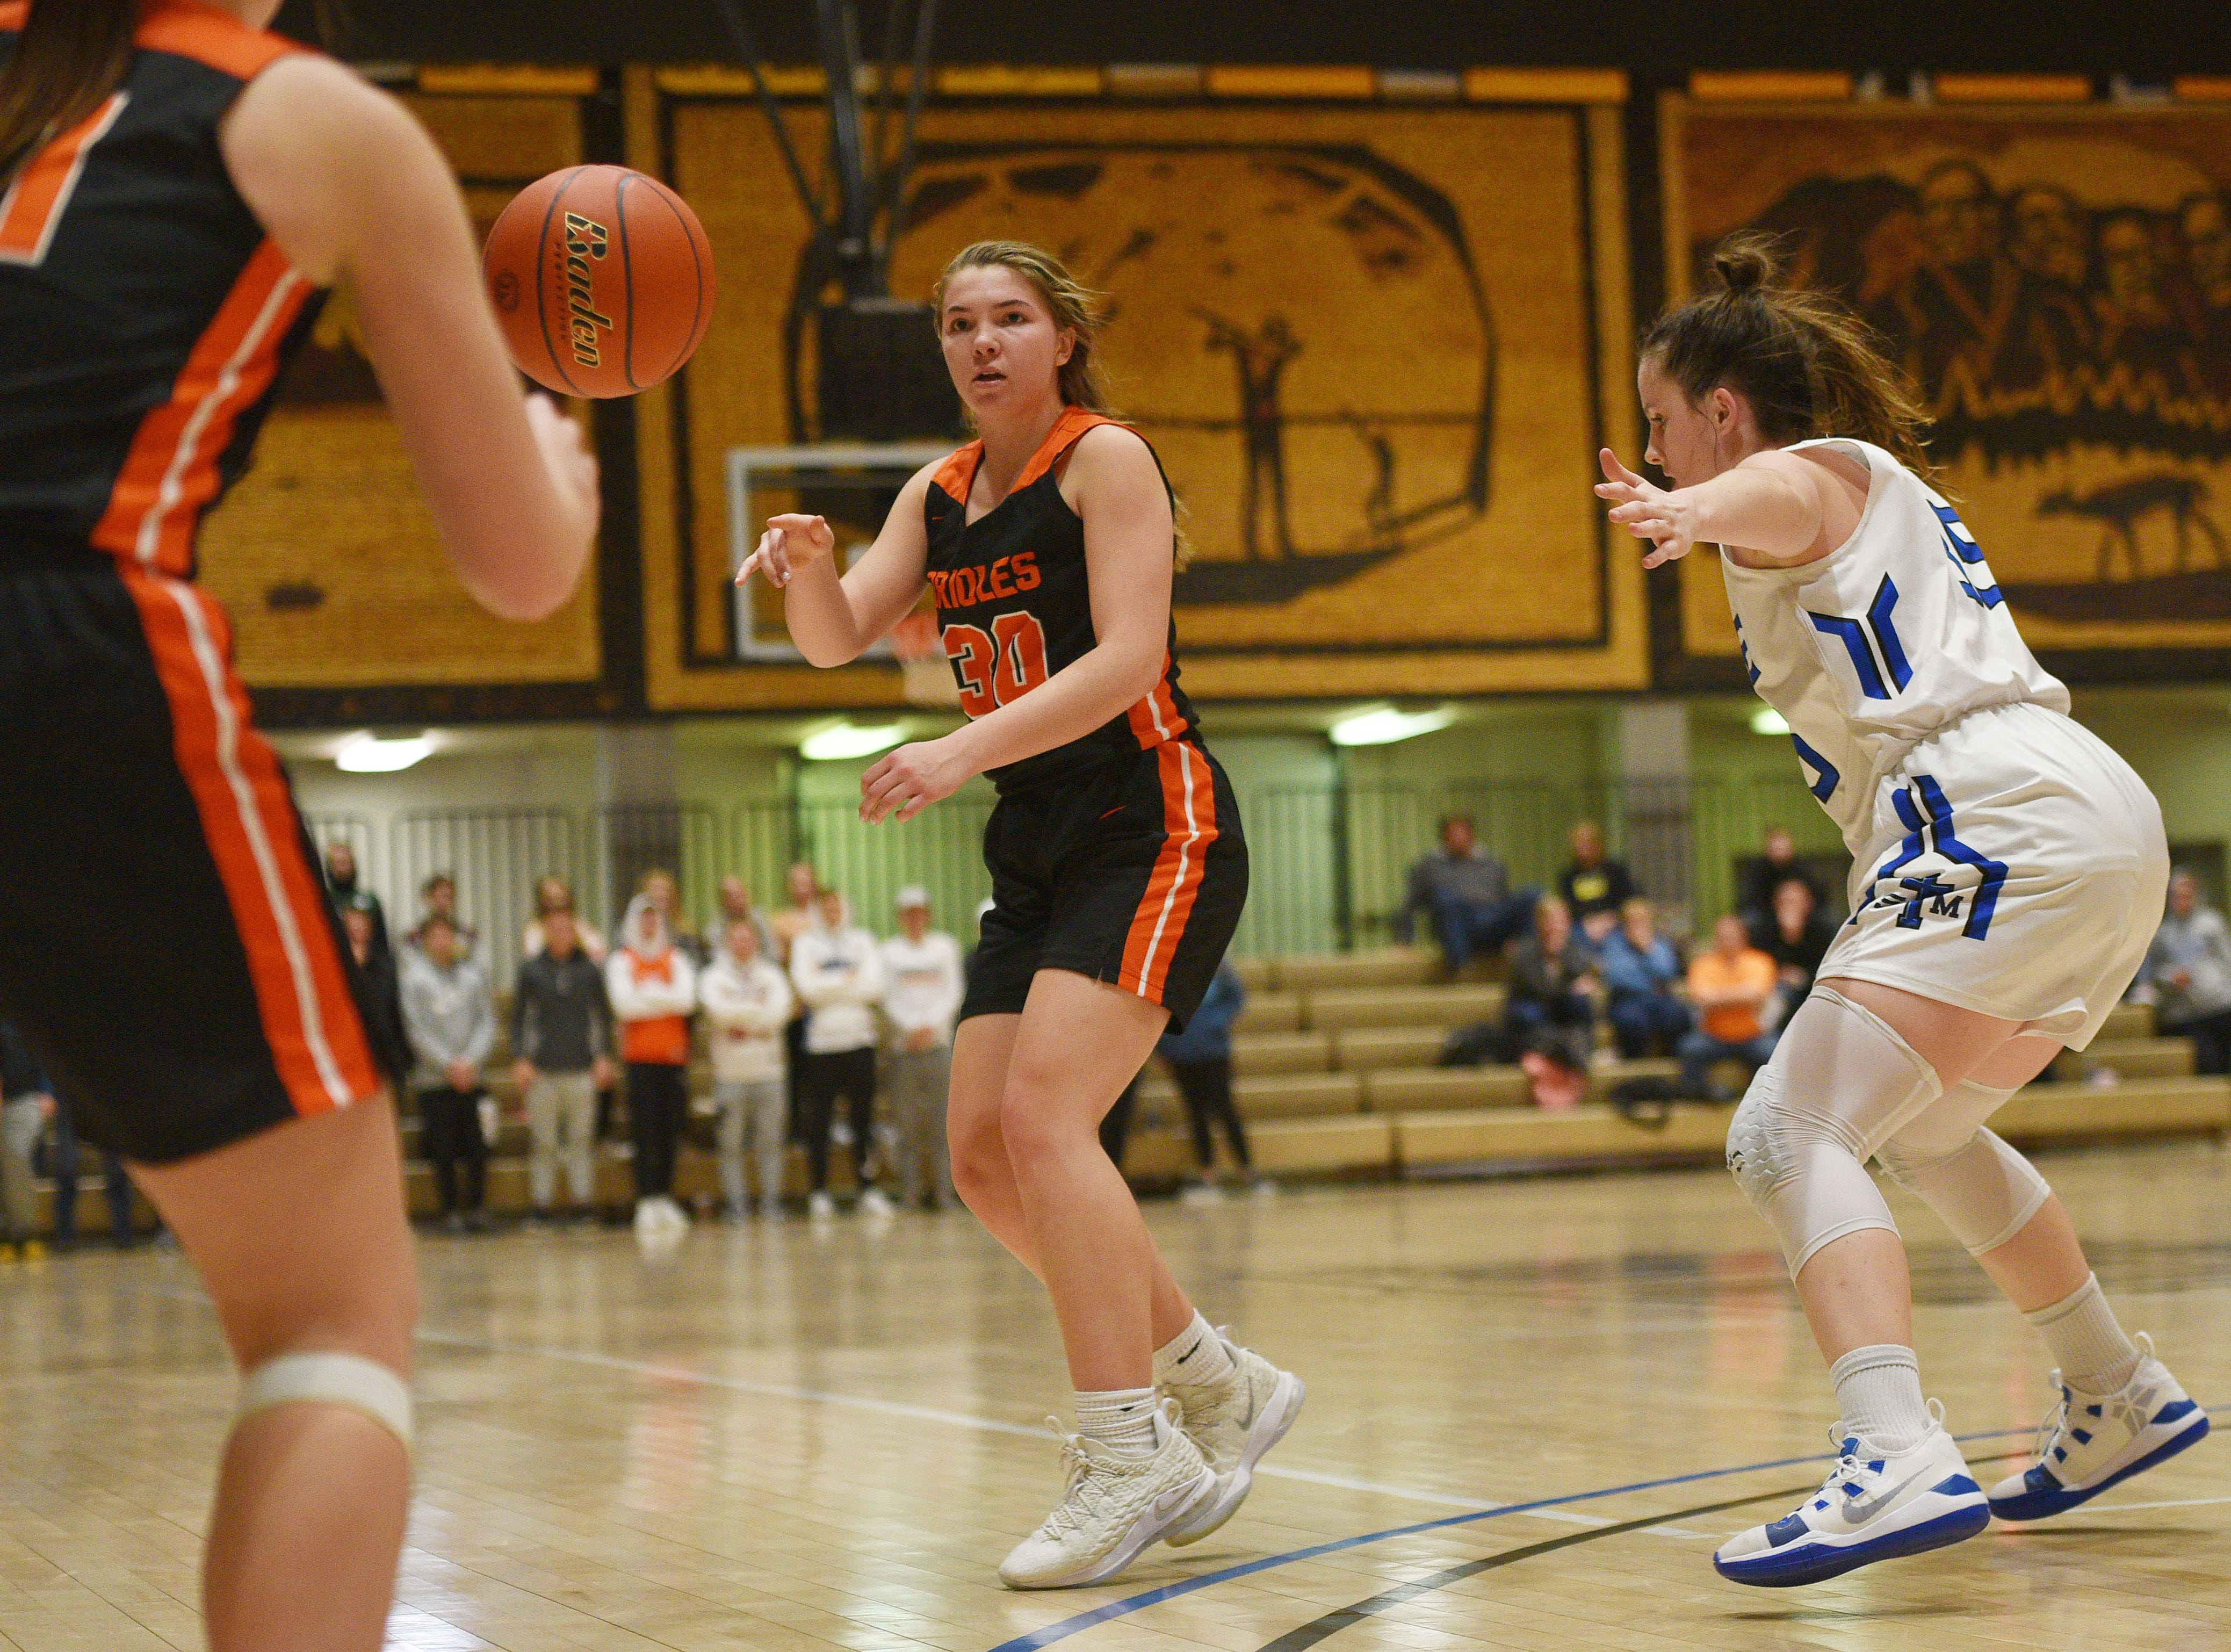 Lennox's Rianna Fillipi during the game against St. Thomas More in the Hanson Girls Classic Saturday,  Jan. 12, in Mitchell.